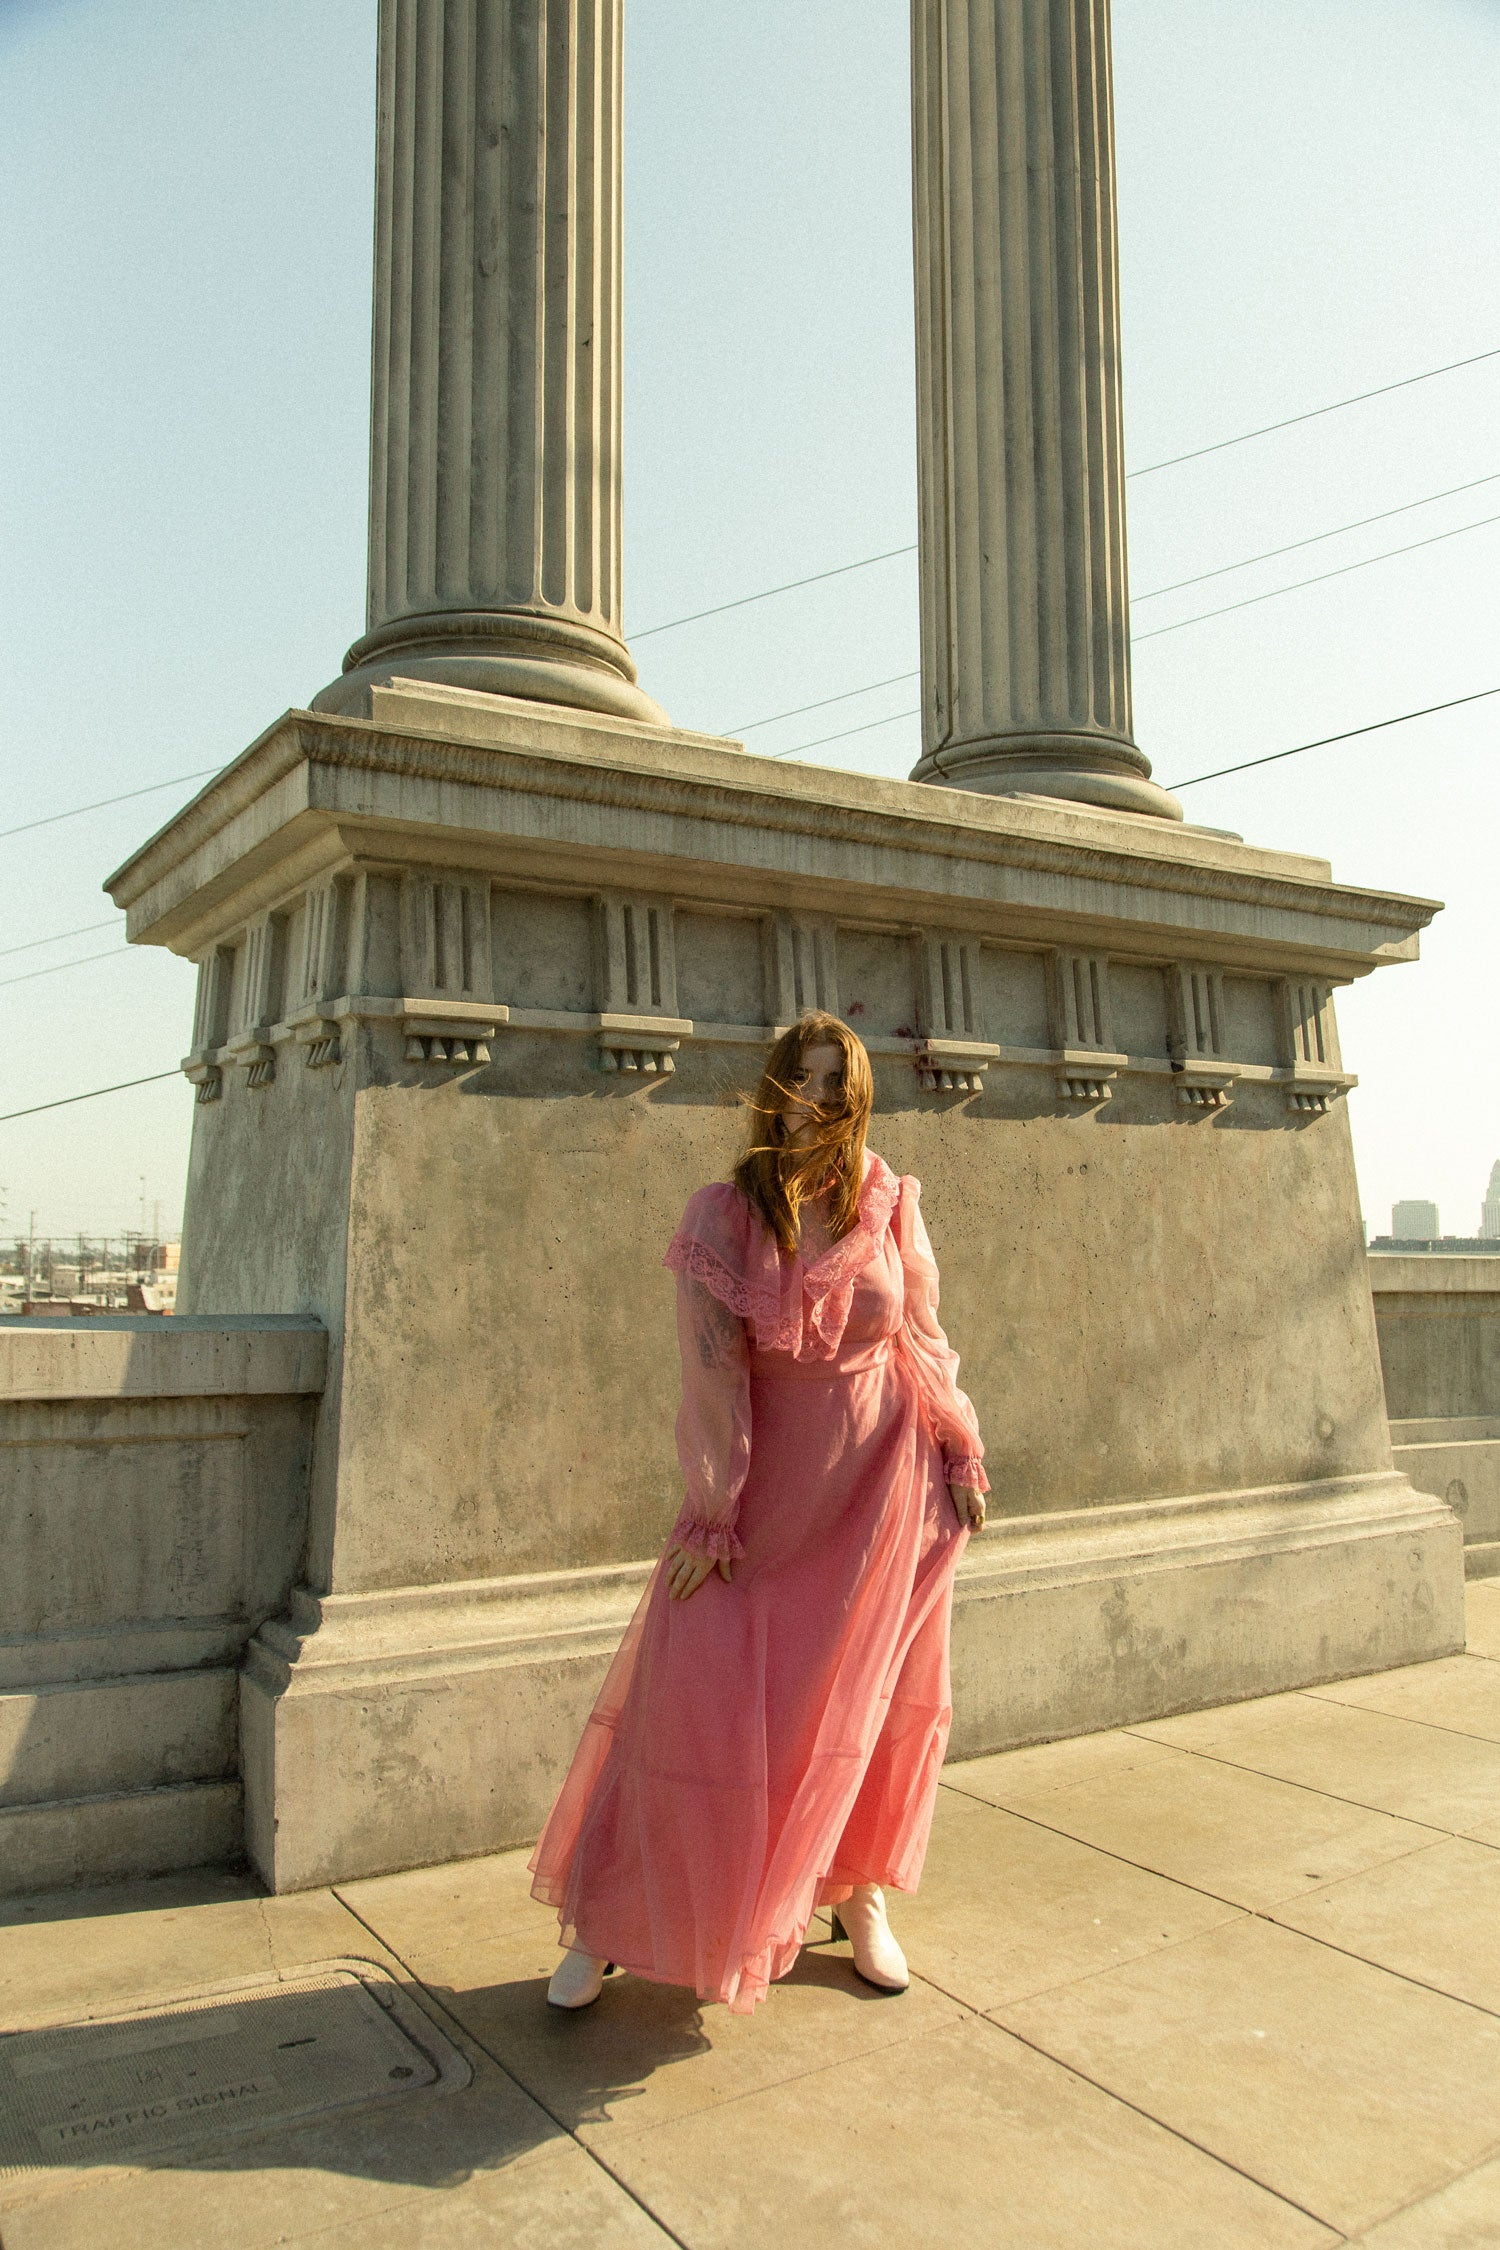 Woman standing on bridge, with wind blowing hair in face.  Wearing vintage 80s prairie style, pink maxi dress.